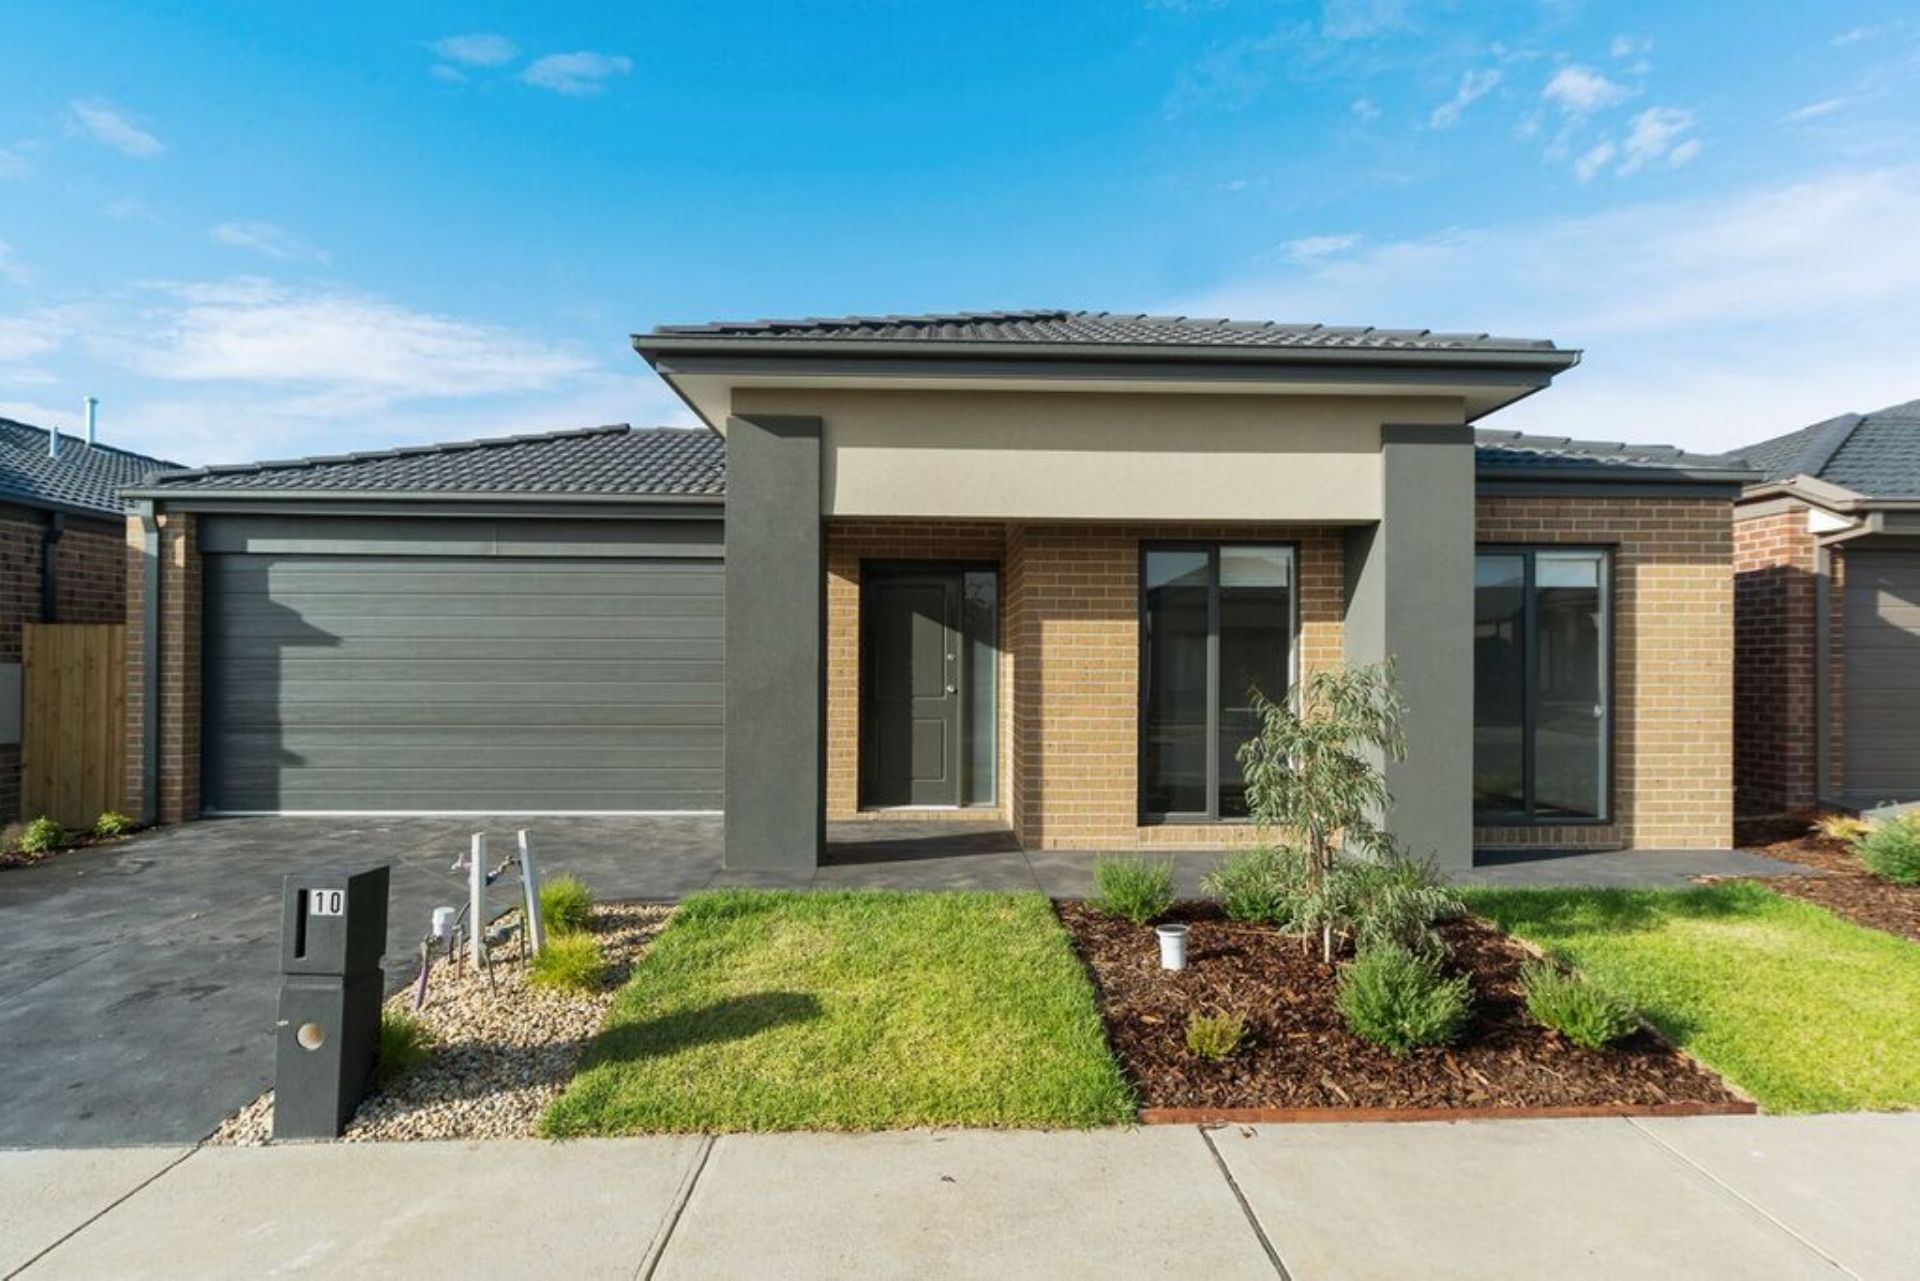 10 Roskopp Avenue, CLYDE NORTH, VIC, 3978 - Image